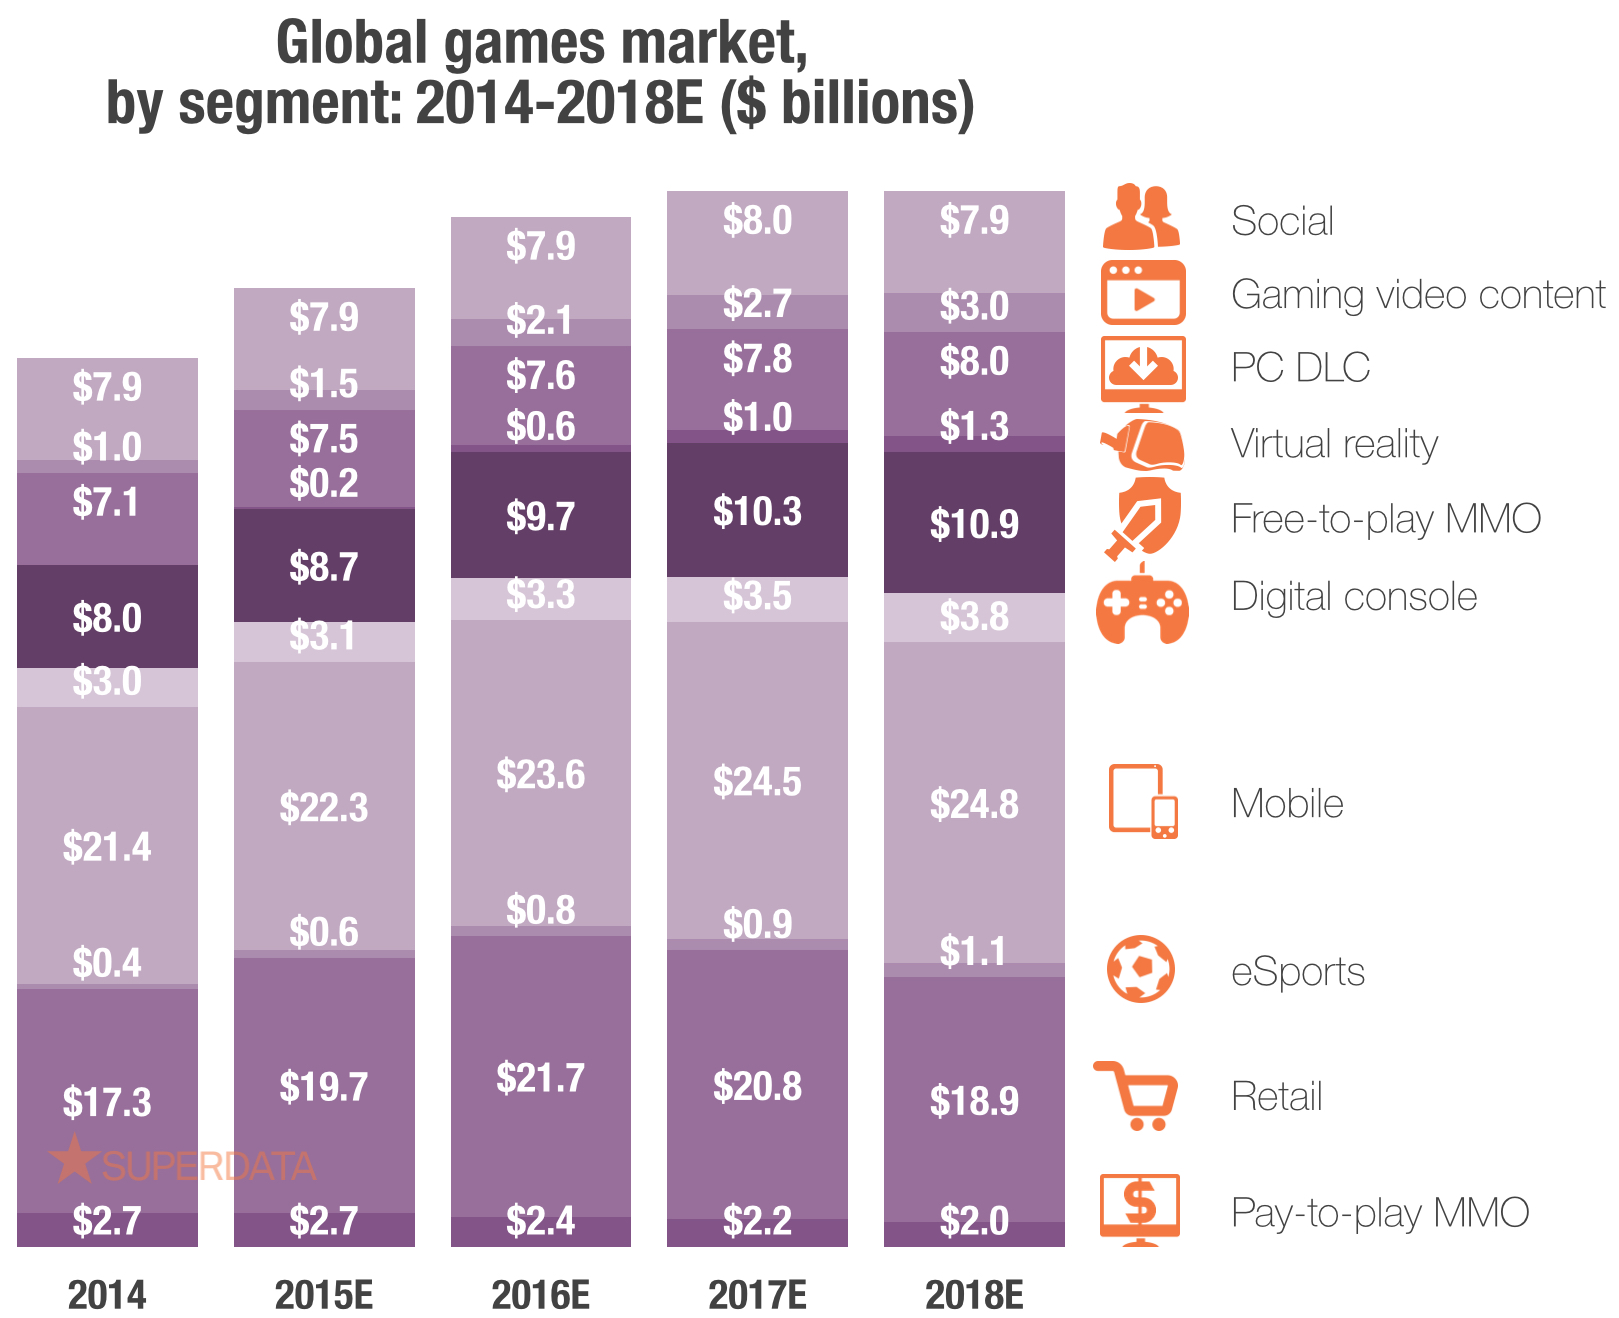 Projected growth by games segment